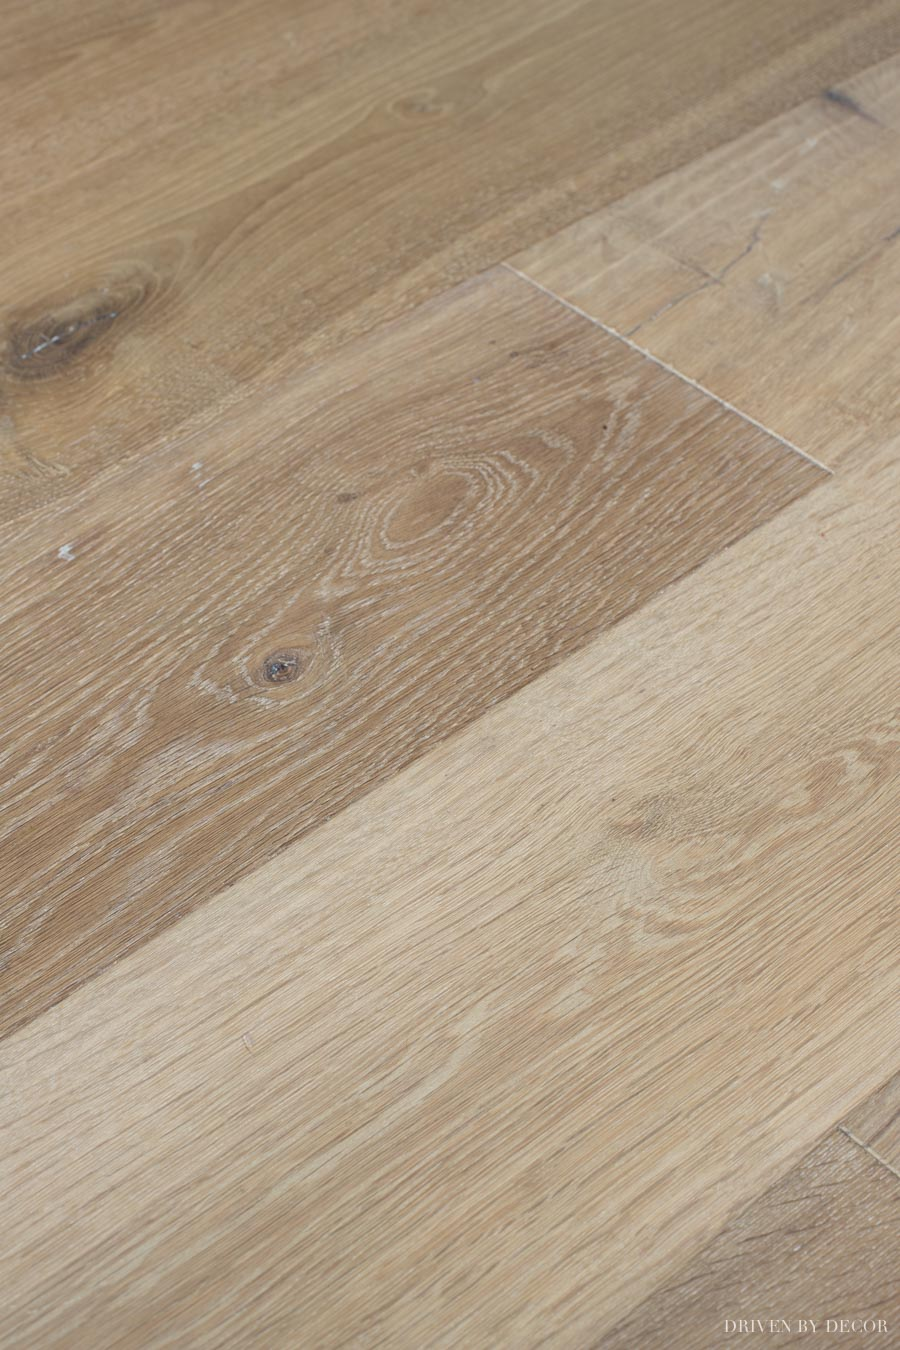 Our Hallmark Wood Floors: My Two Year Later Review!  Driven by Decor